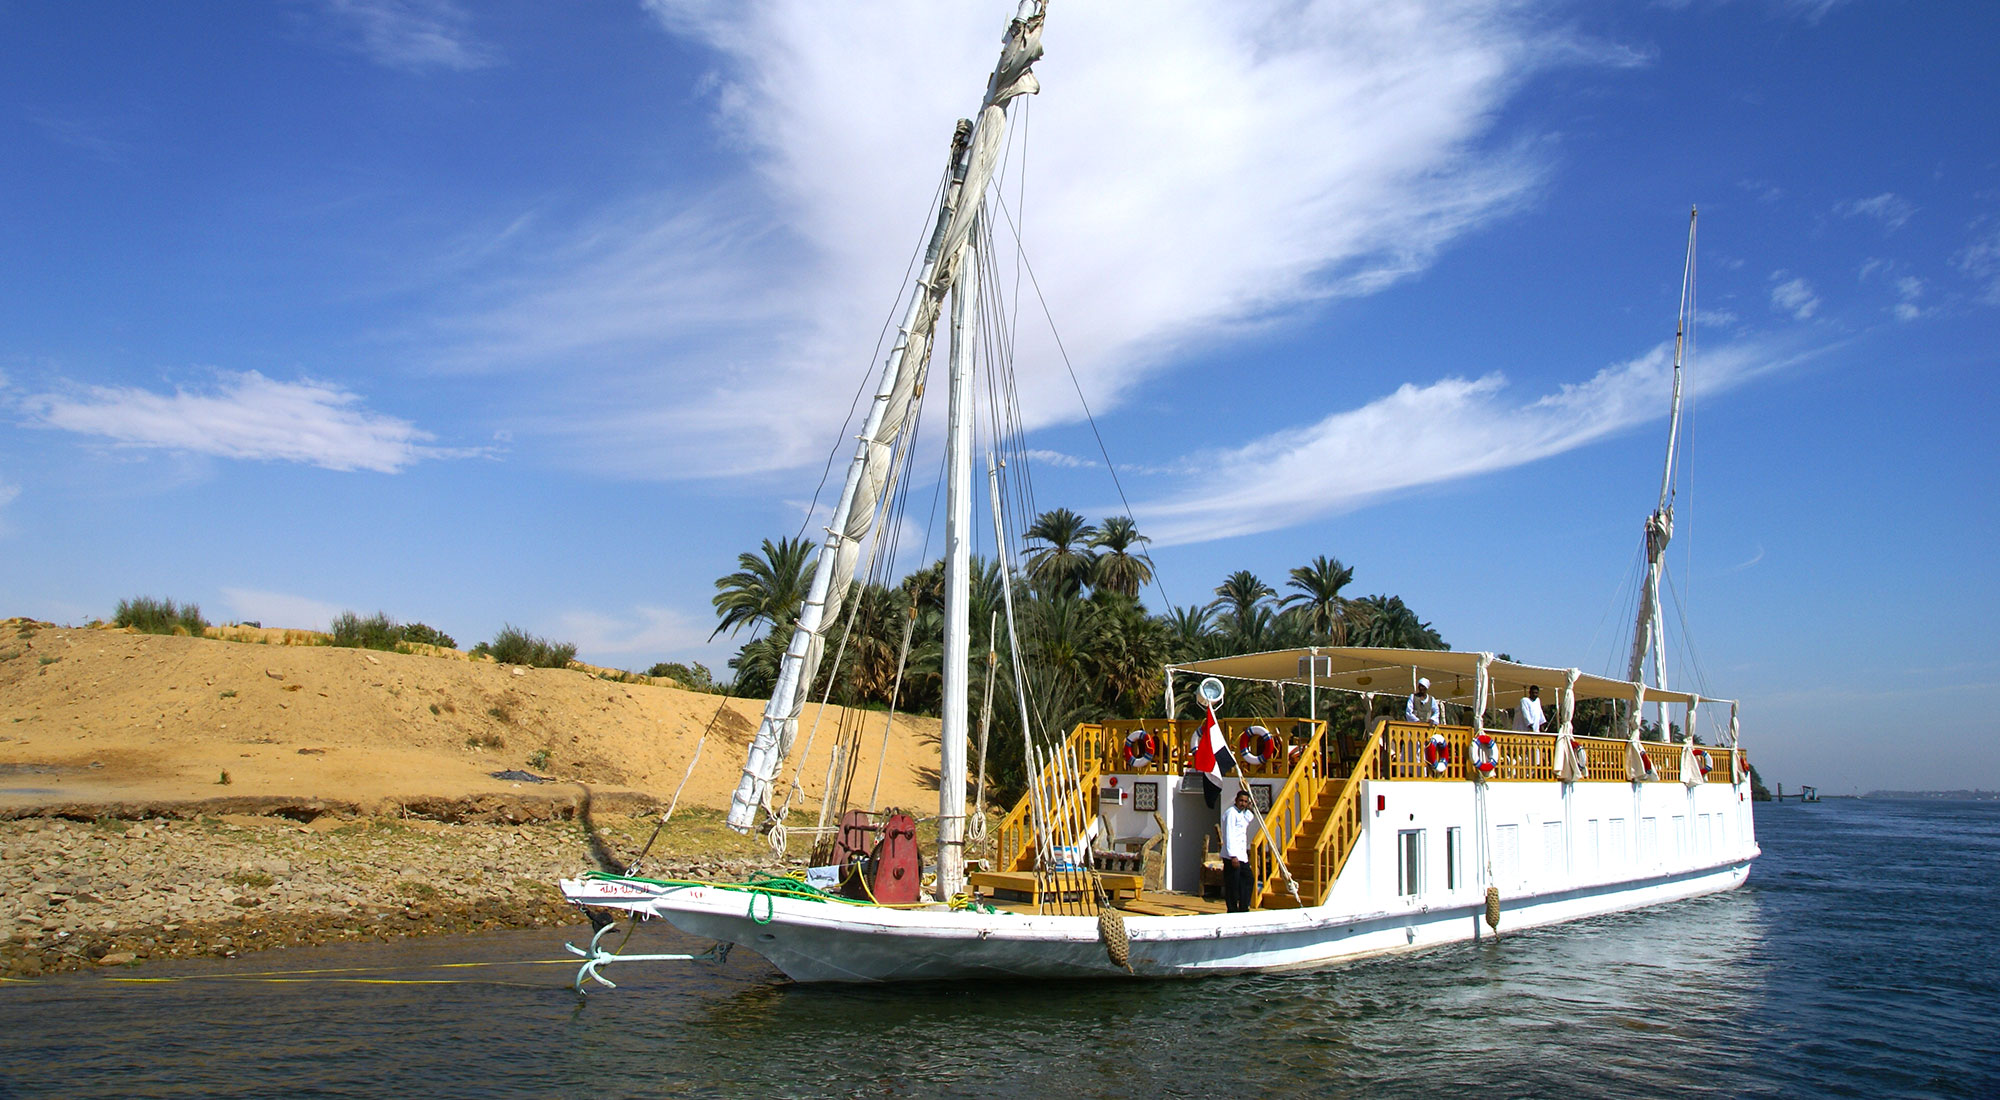 Dahabiya Nile cruise from Aswan to Luxor